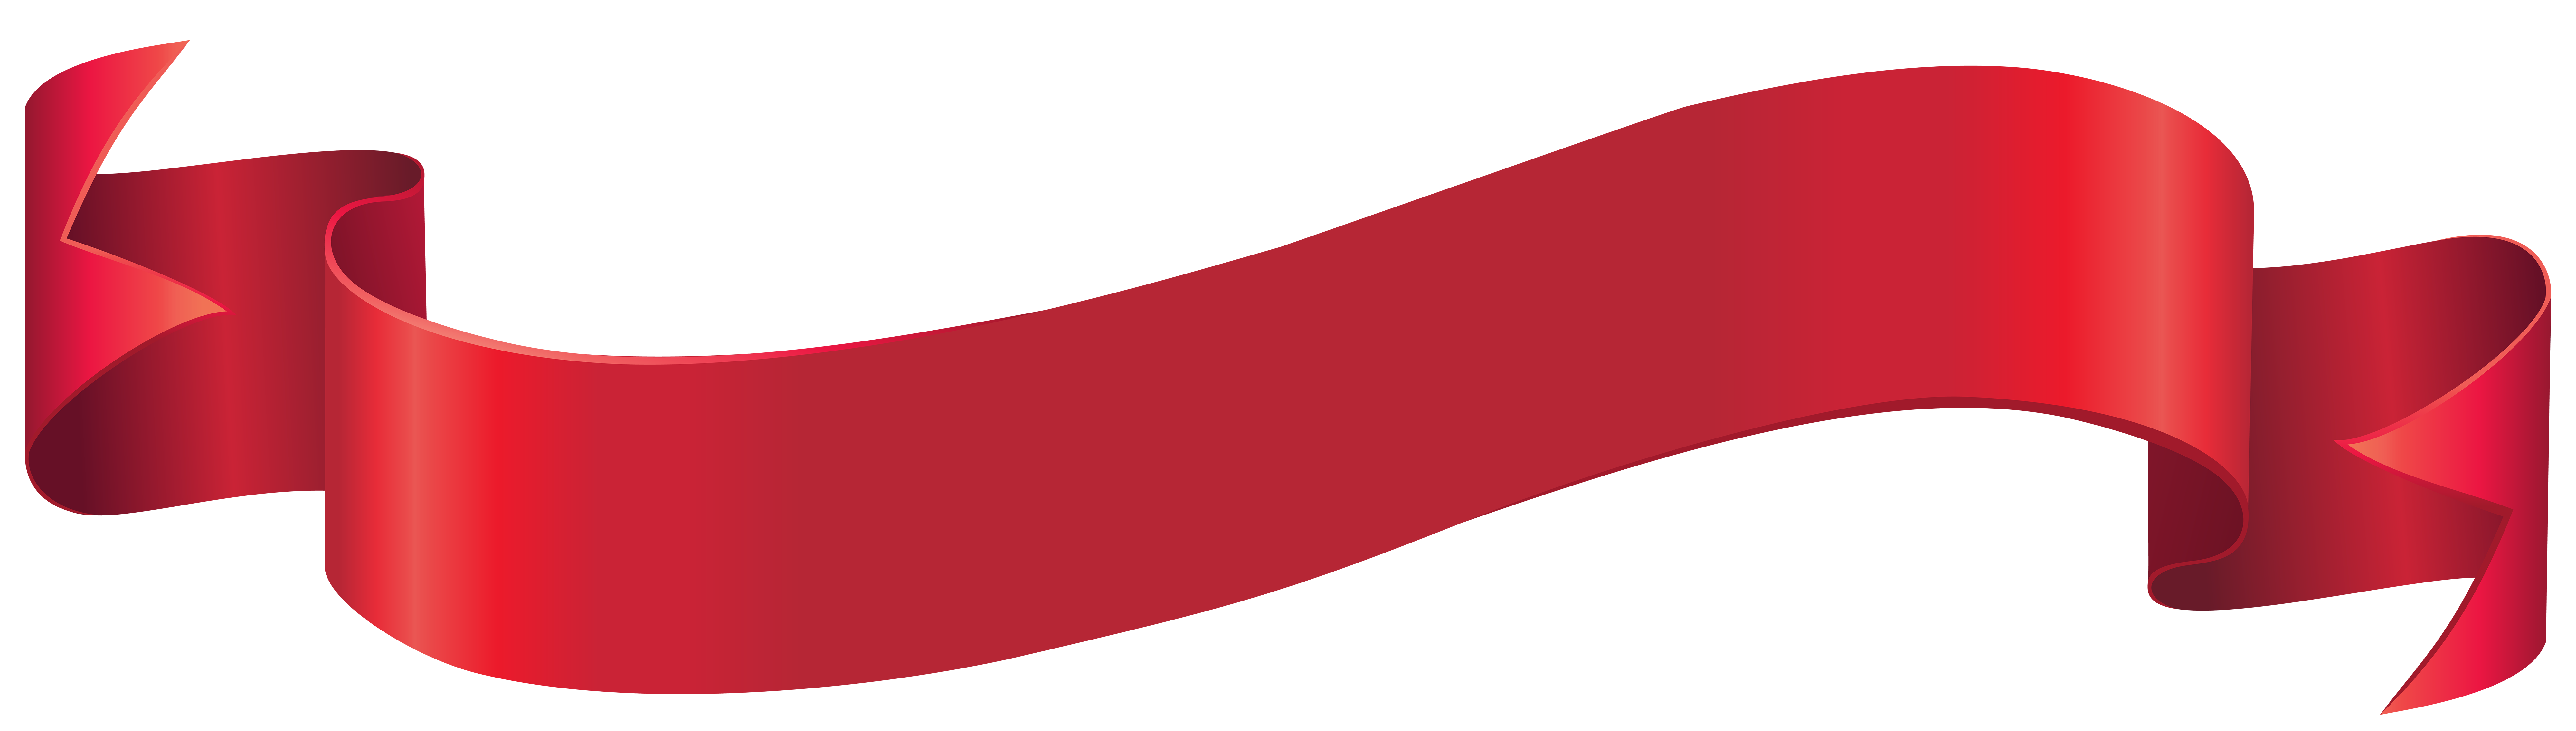 Banner clip art image. Red m png picture free download